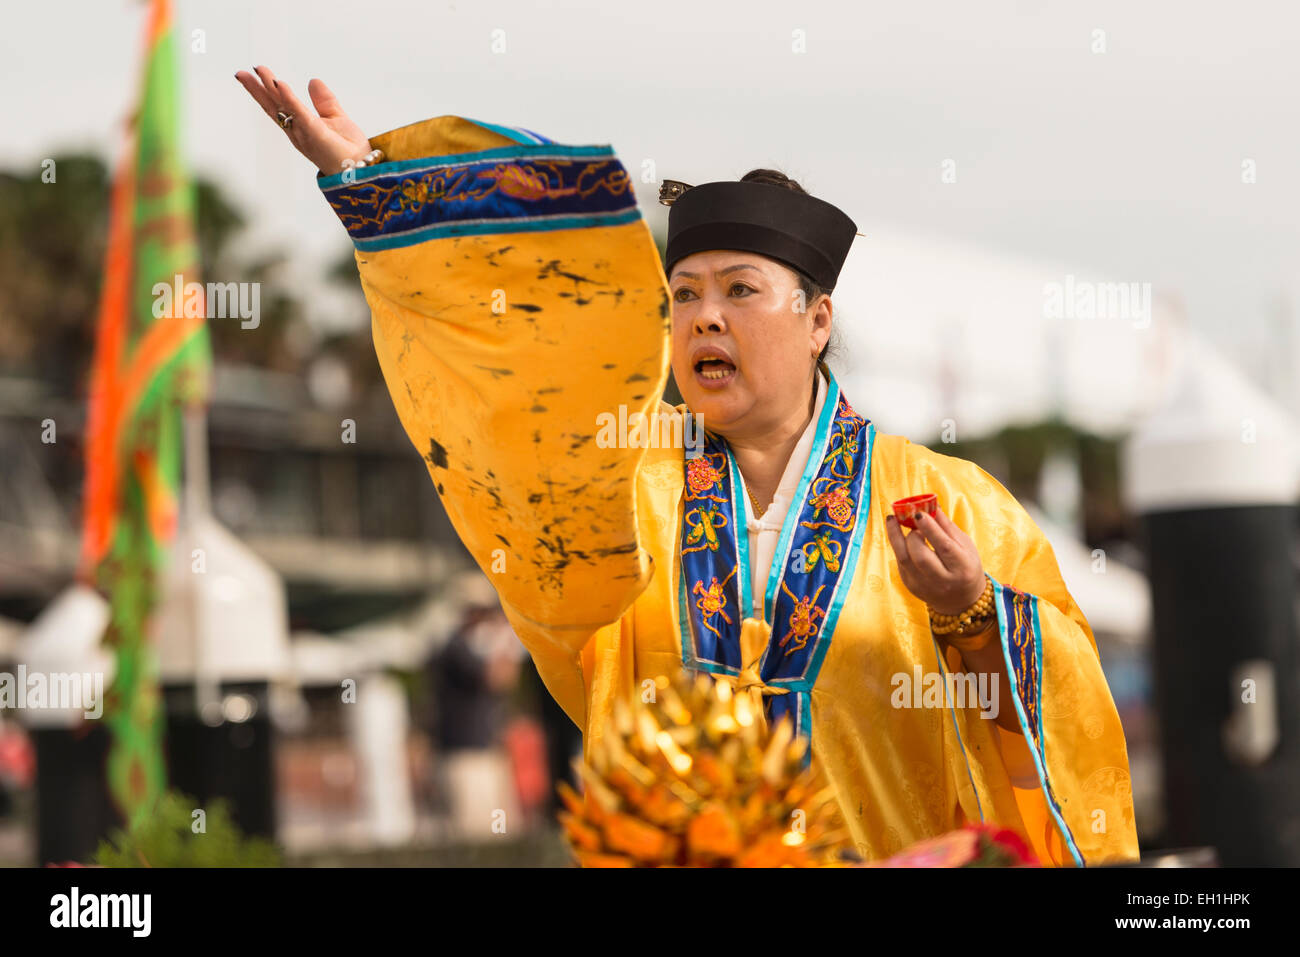 A priest blessing the waters during the Taoist ceremony eye dotting dragon boats to ensure a safe weekend of racing. - Stock Image